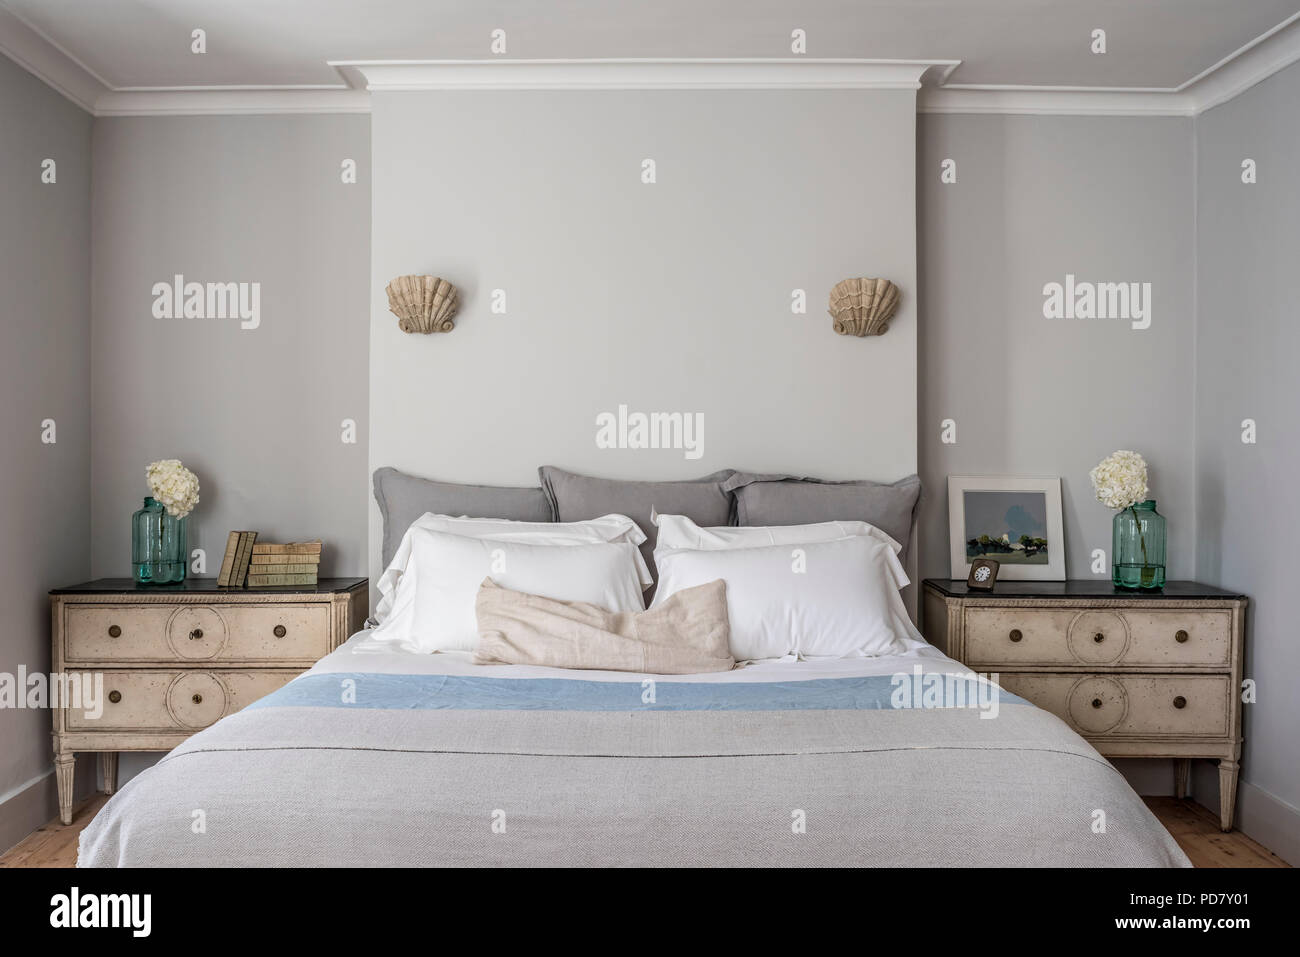 Elegant Bedroom With Window Shutters And Scallop Wall Sconce Lights From  Cox London Lighting. The Bed Is Flanked By A Pair Of Gustavian Painted  Swedis